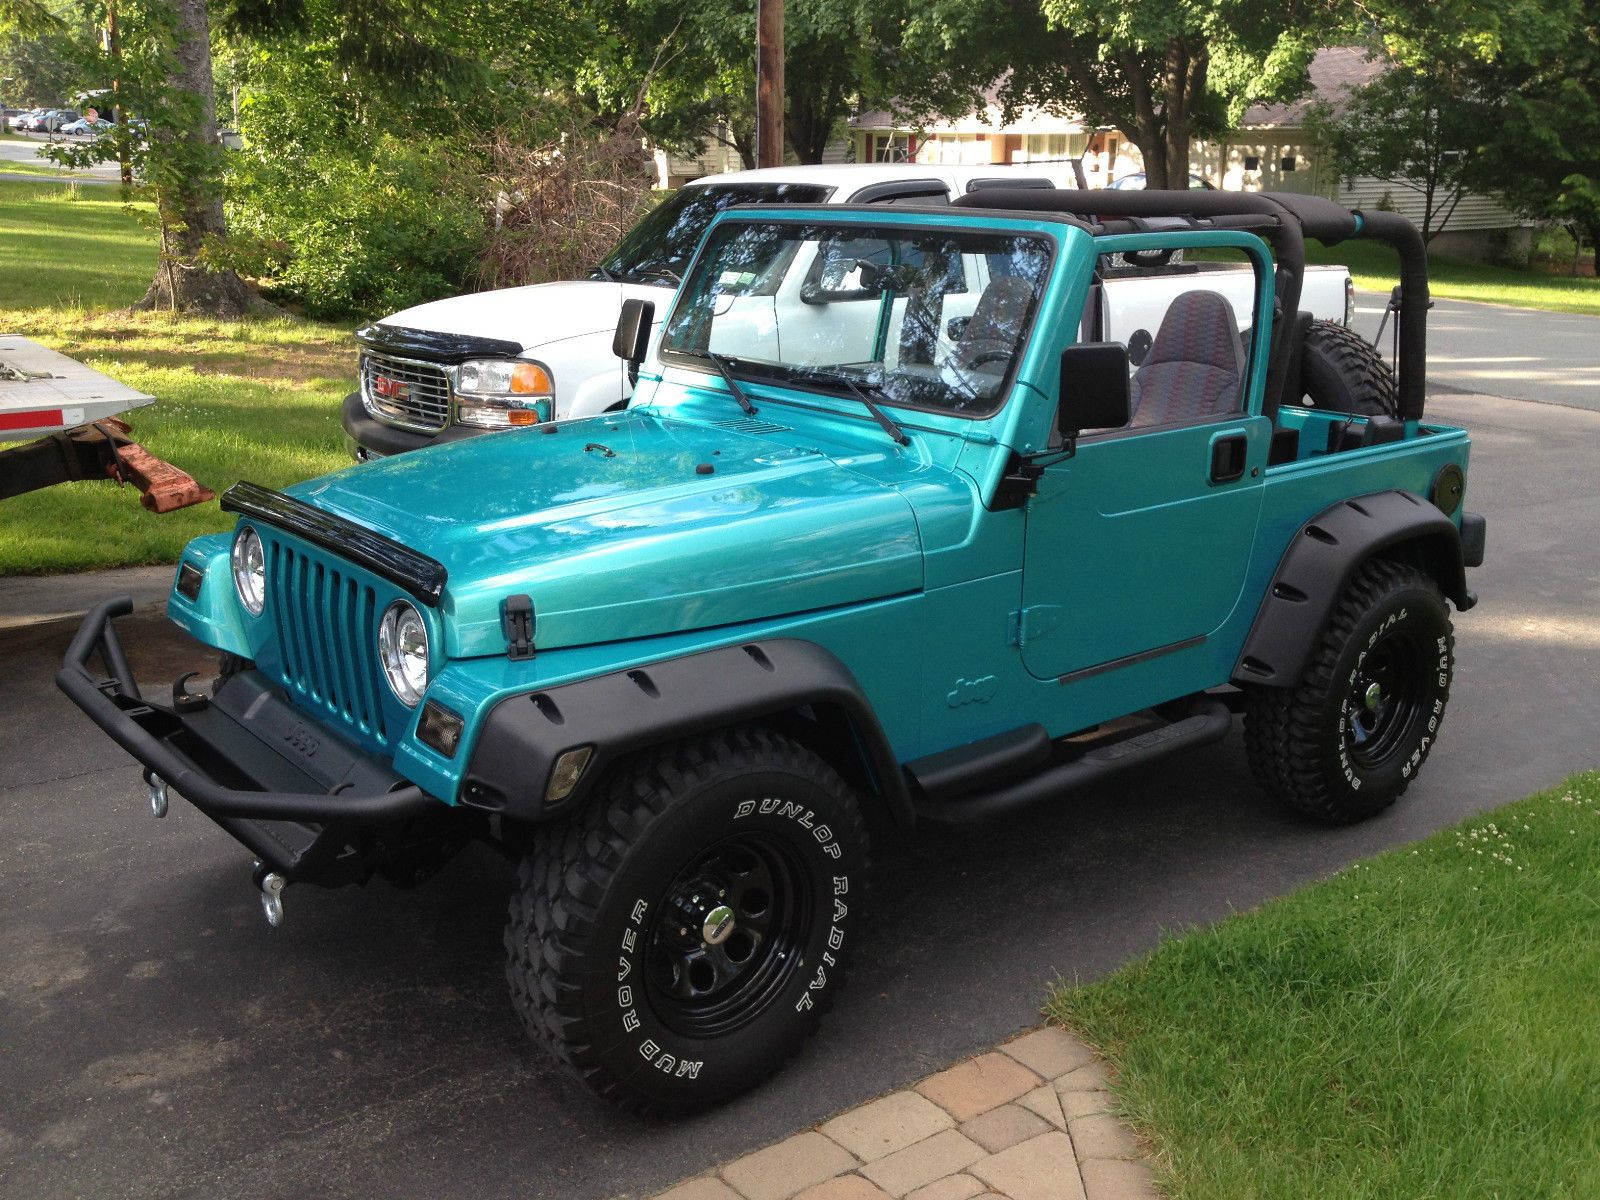 Pin By Victoria B On Things I Love Two Door Jeep Wrangler 1998 Jeep Wrangler Jeep Wrangler Sport